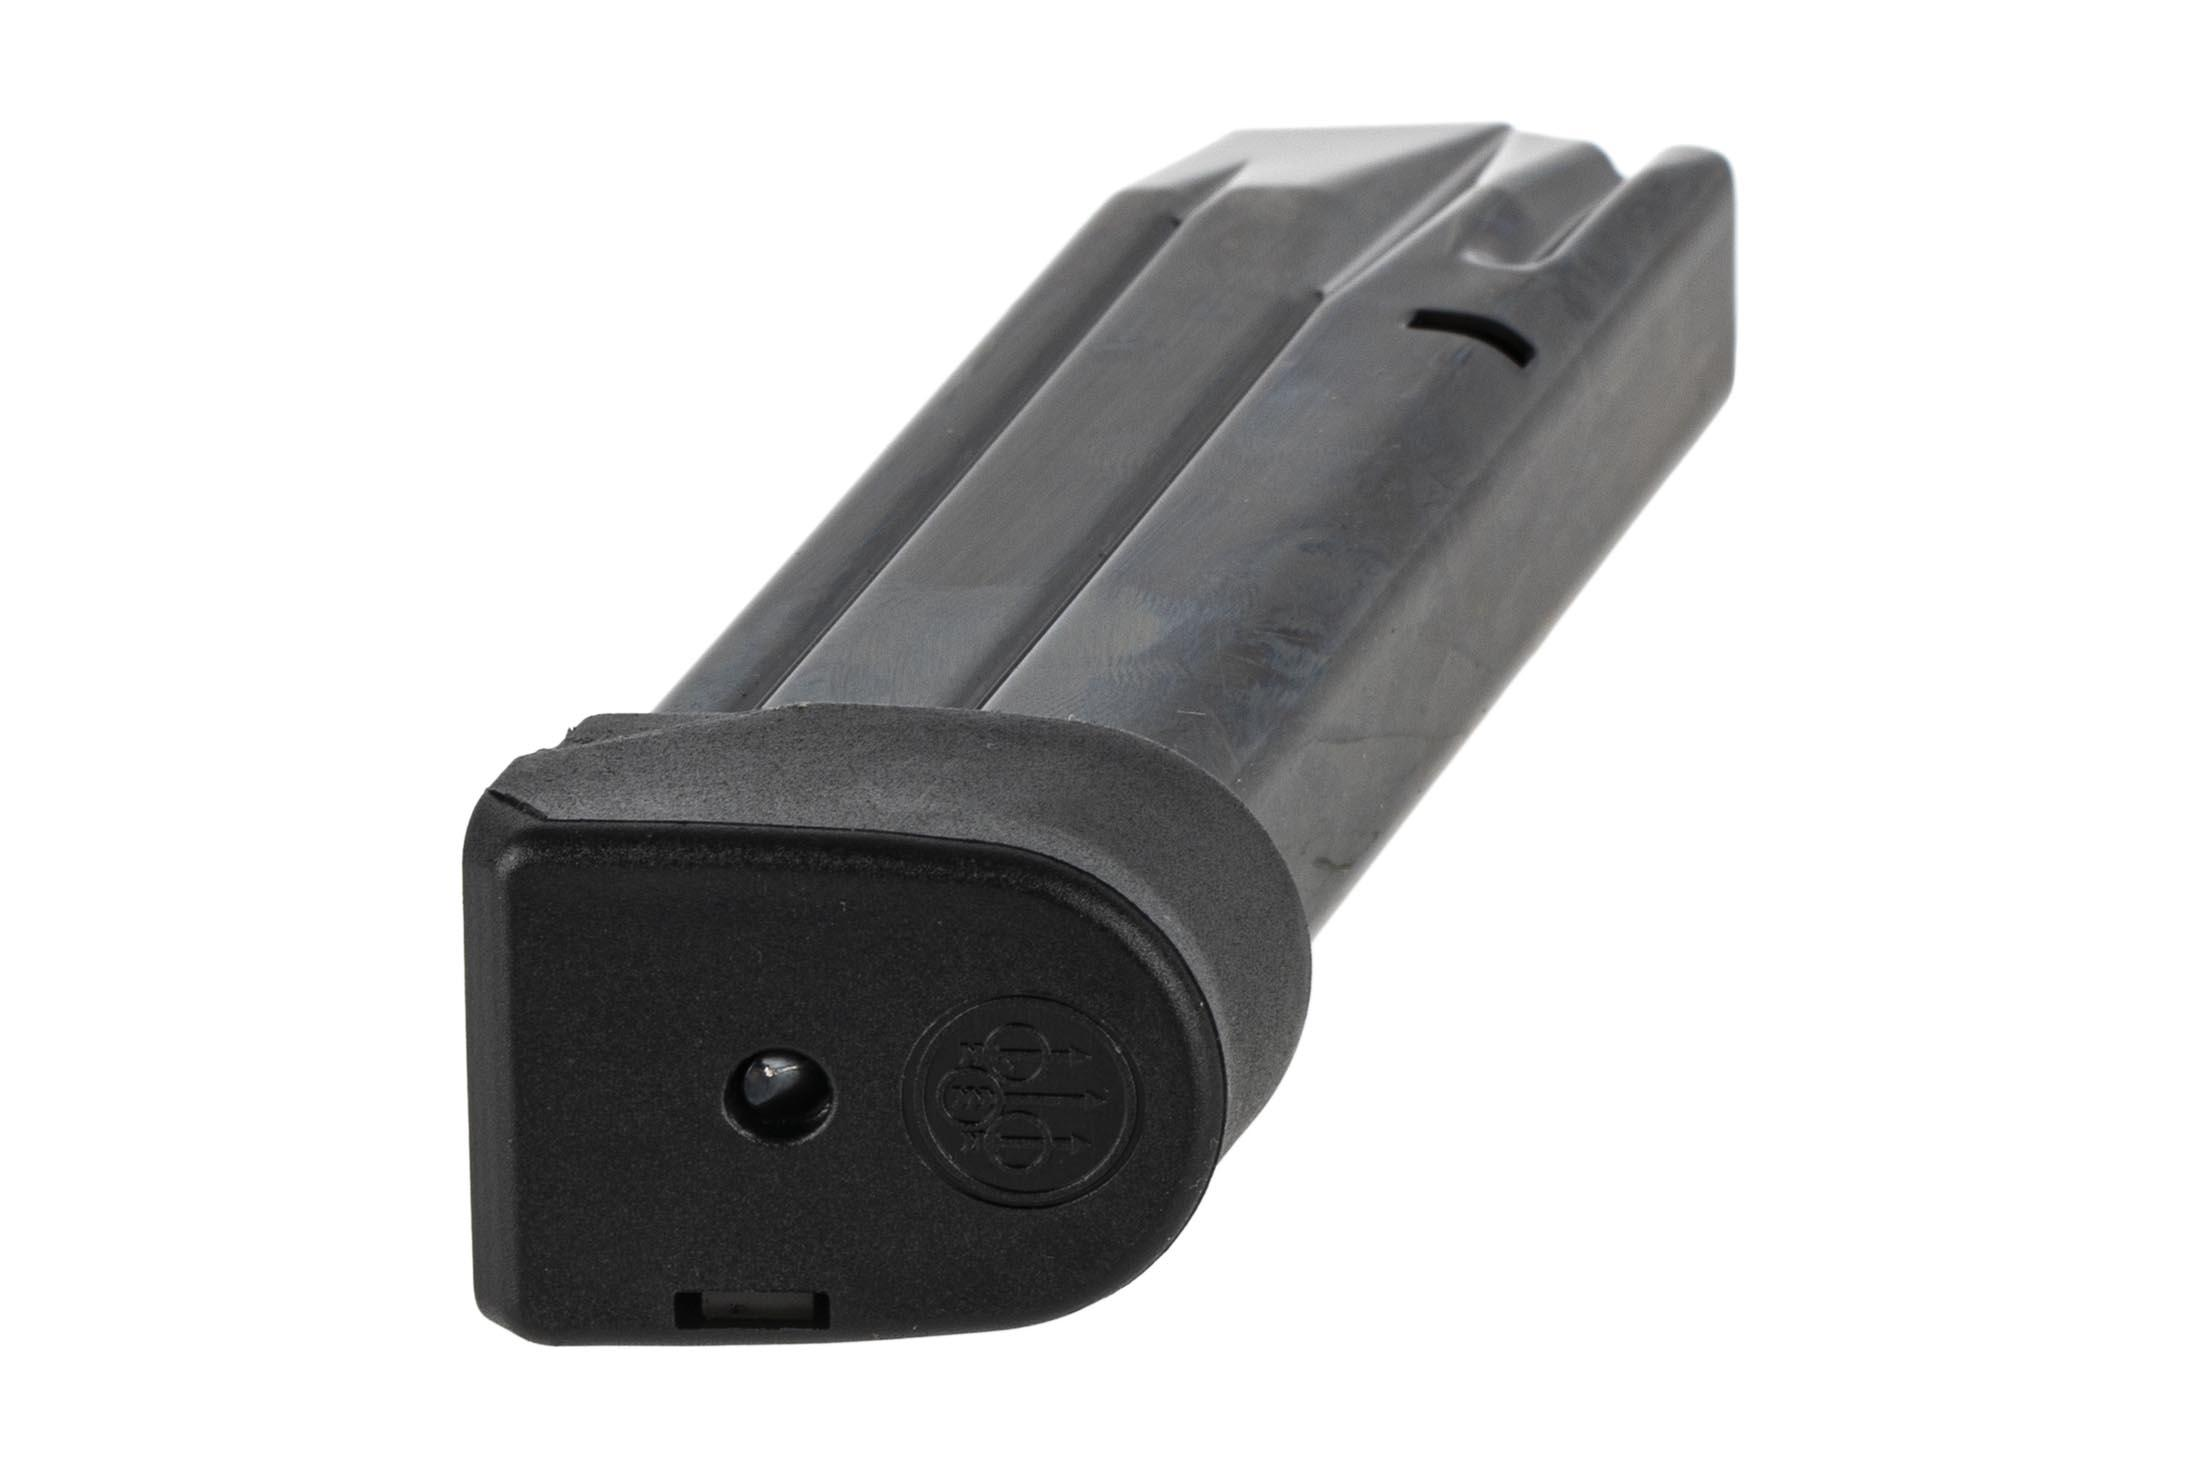 The Beretta PX4 20 round magazine features a polymer base pad